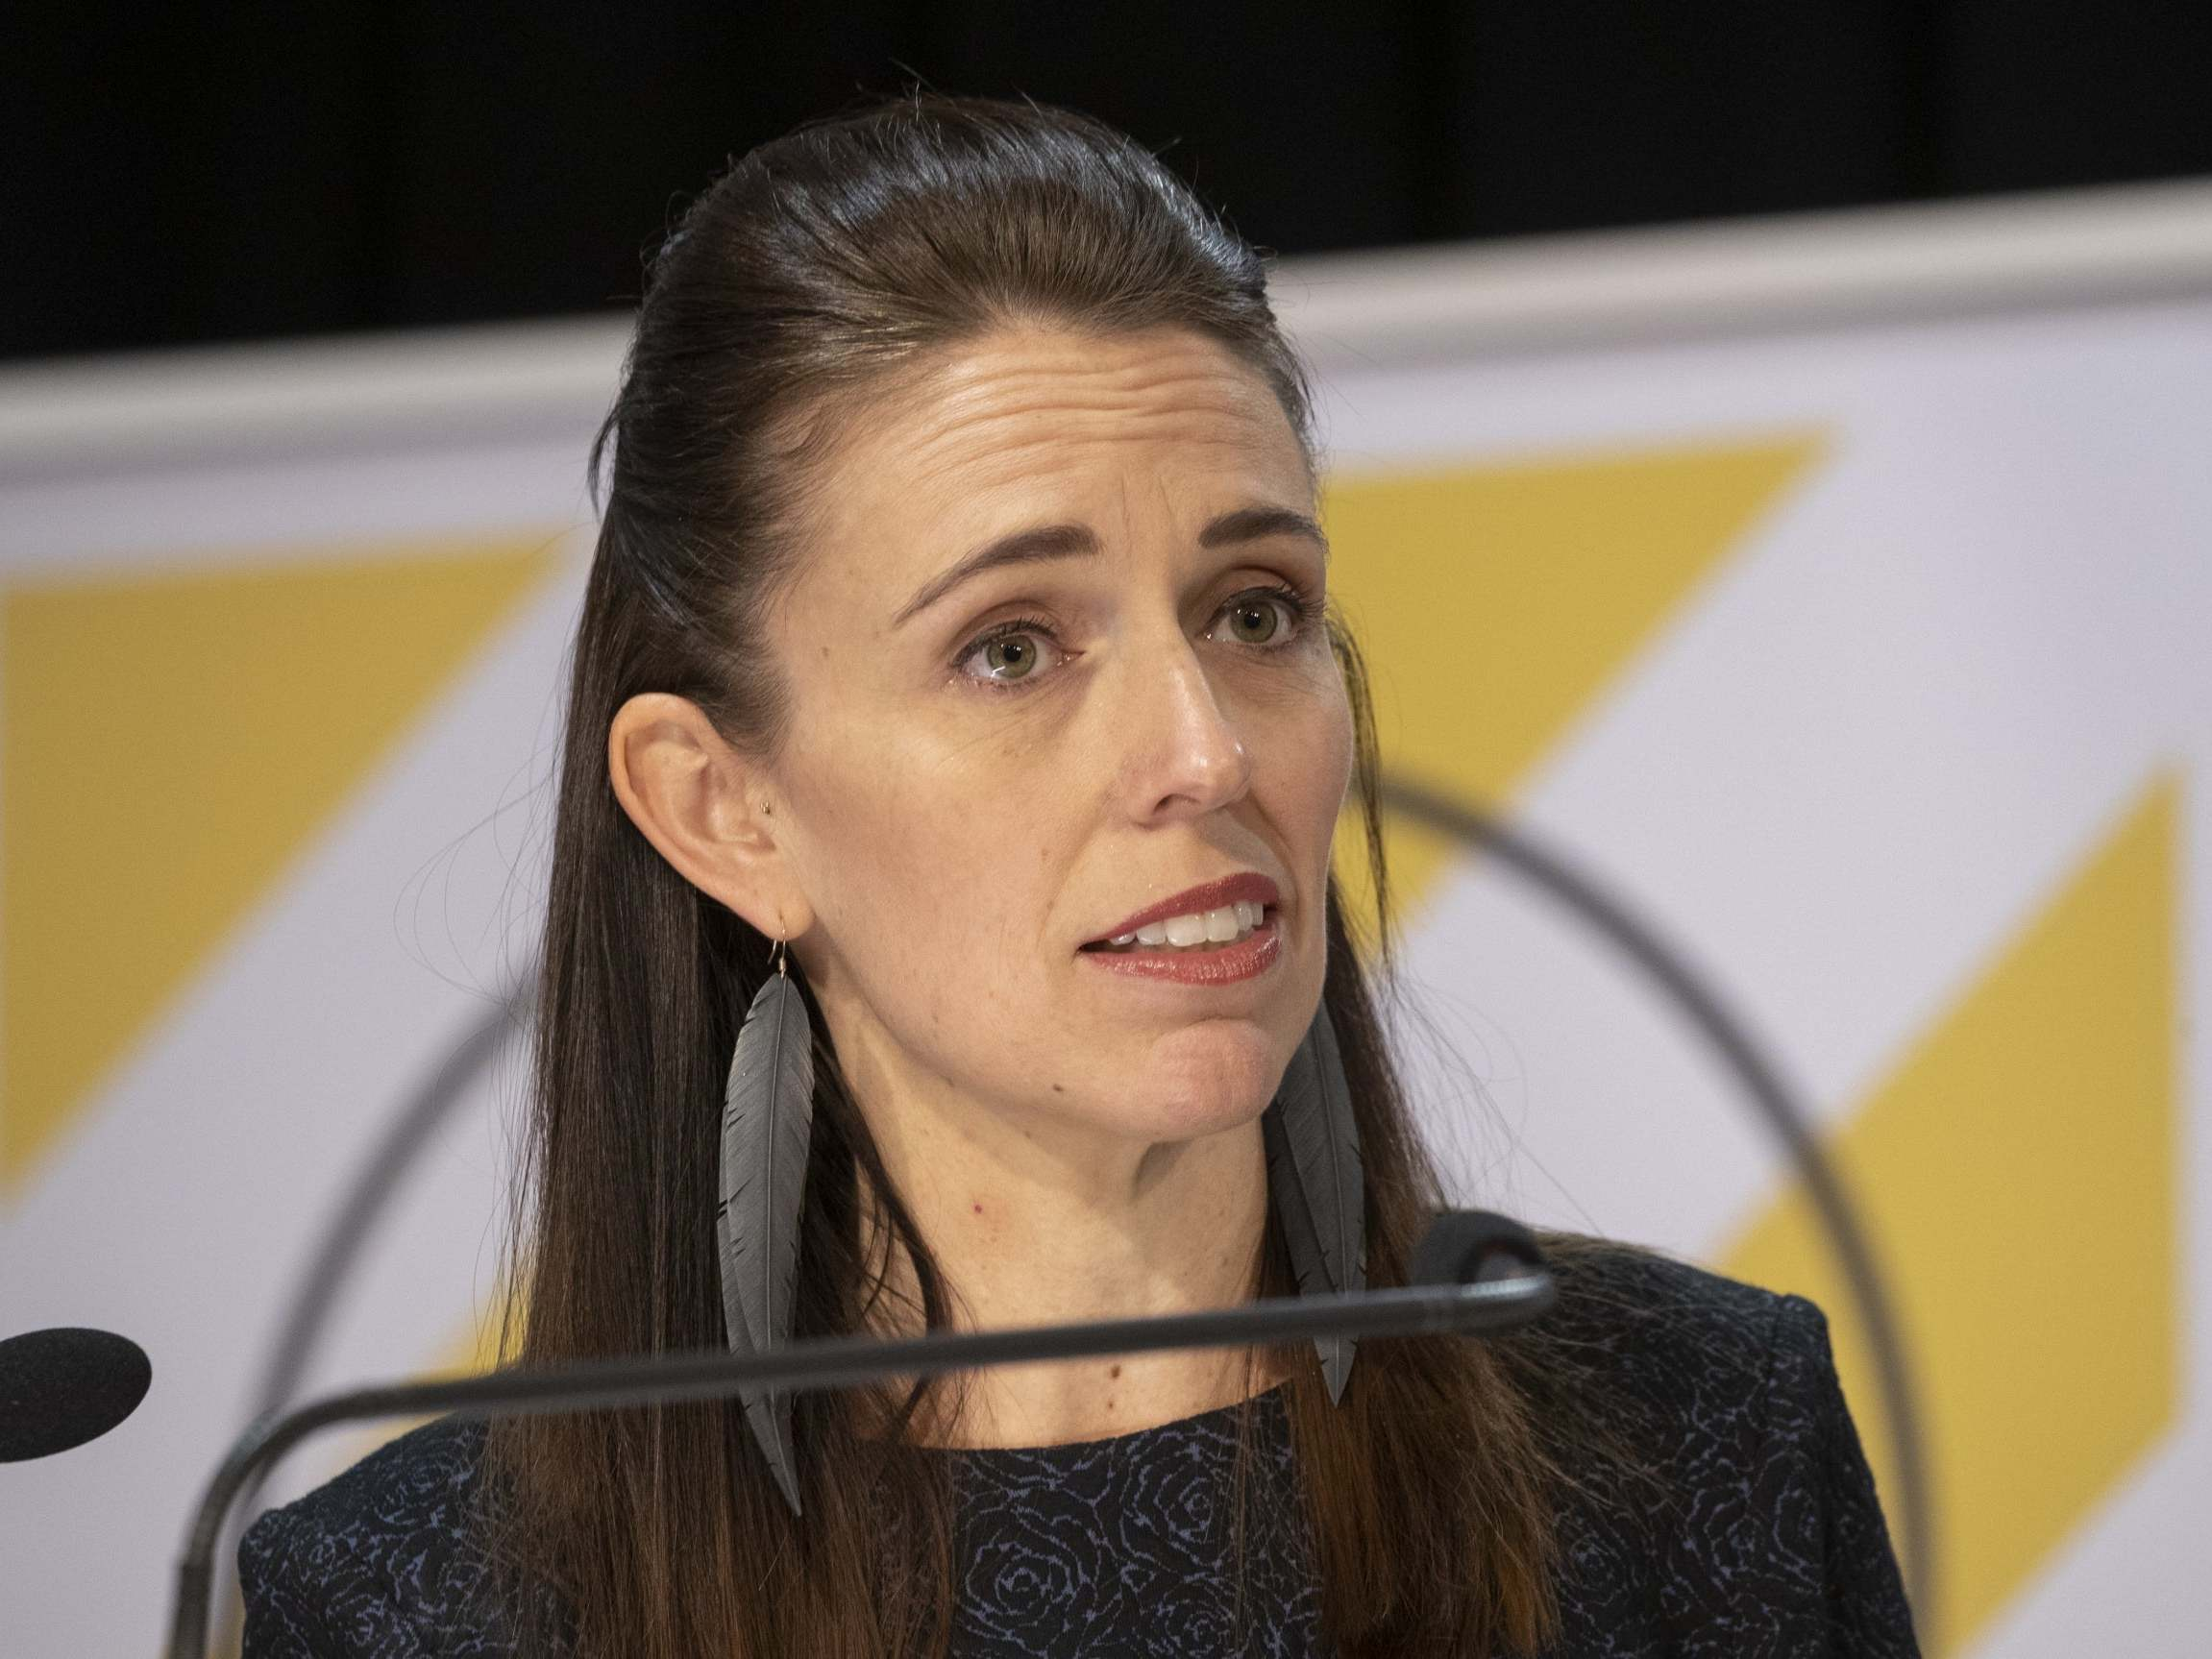 New Zealand plans to ease coronavirus lockdown after 'stopping a wave of devastation'